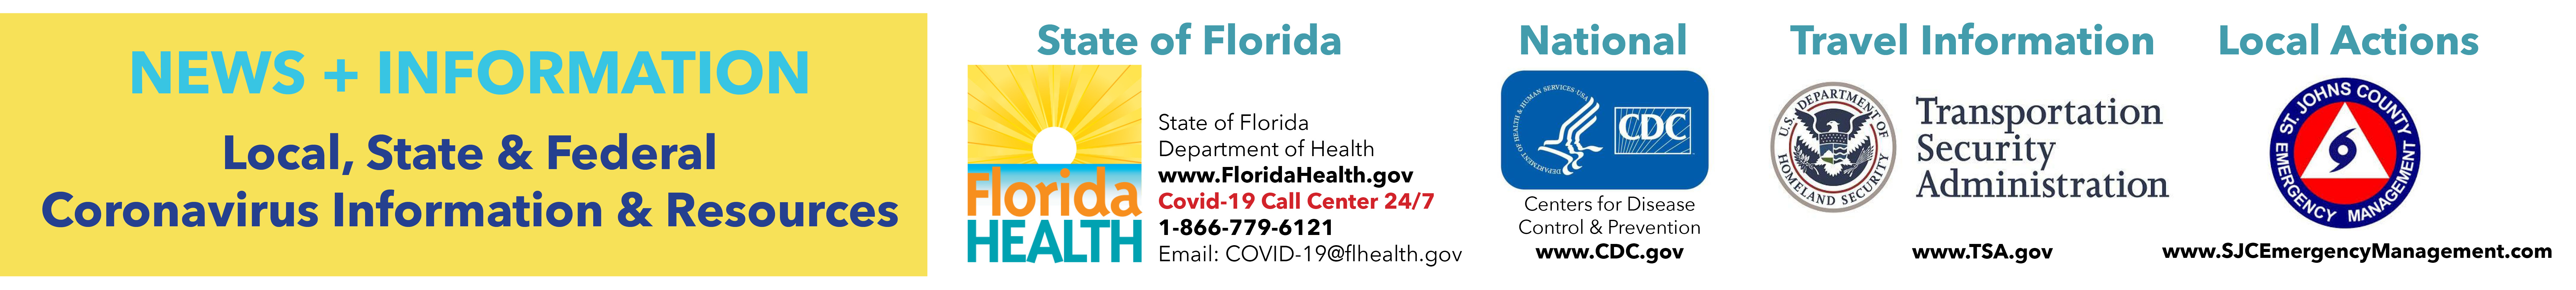 Banner graphic with information and websites for www.FloridaHealth.gov and cdc.gov and tsa.gov and sjcemergencymanagement.com